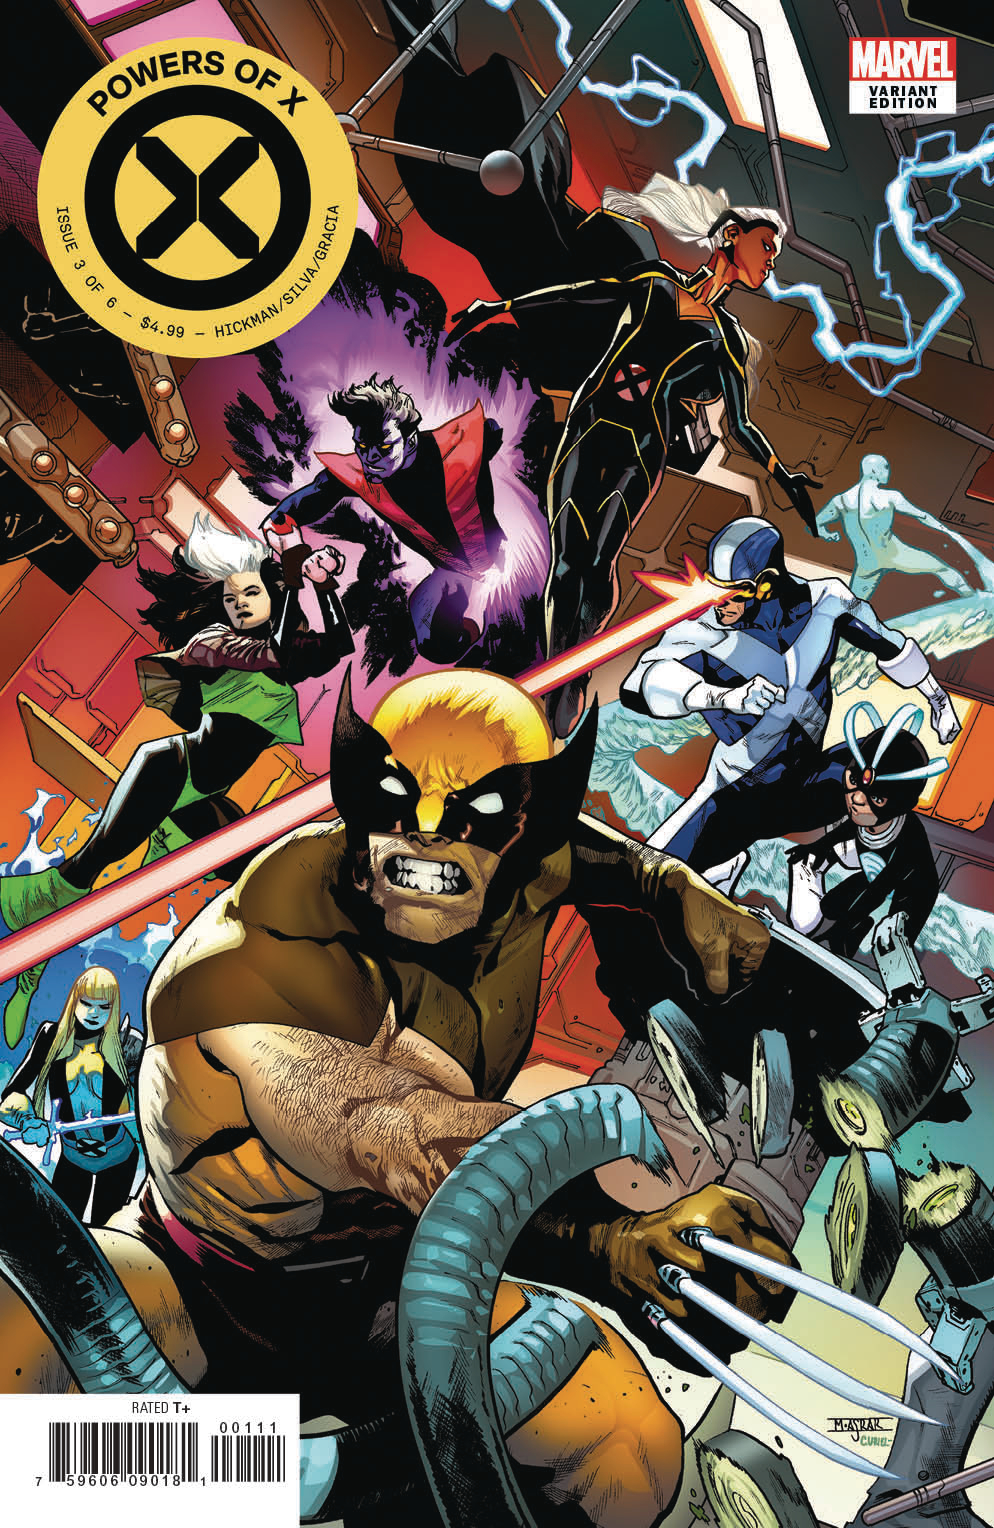 Powers of X #3 Review